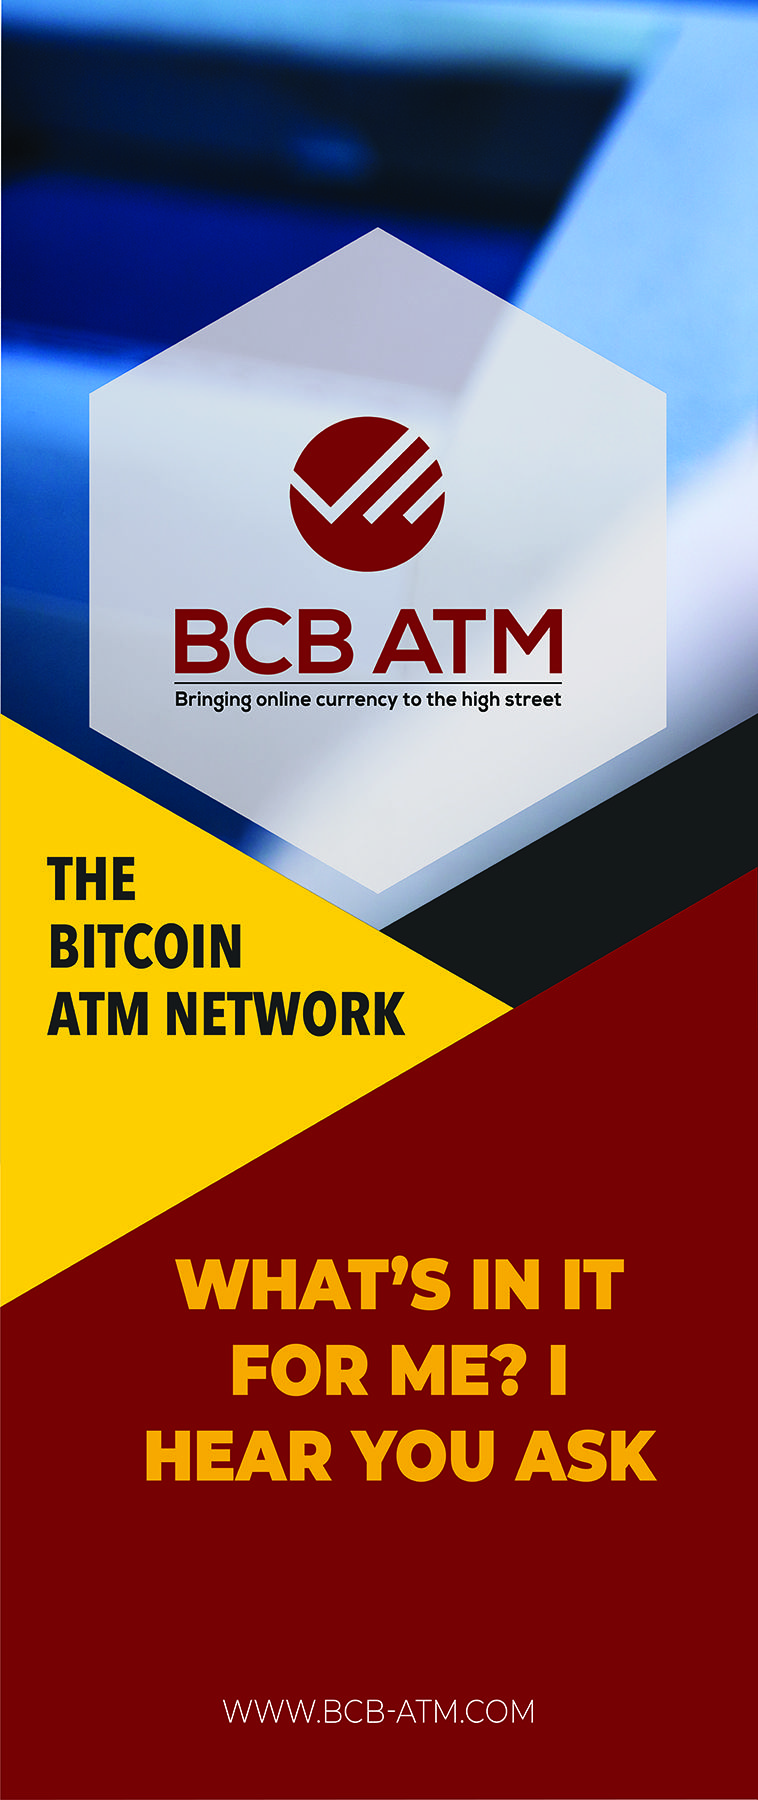 Help us reach 50 Bitcoins ATMs across UK before July and we will